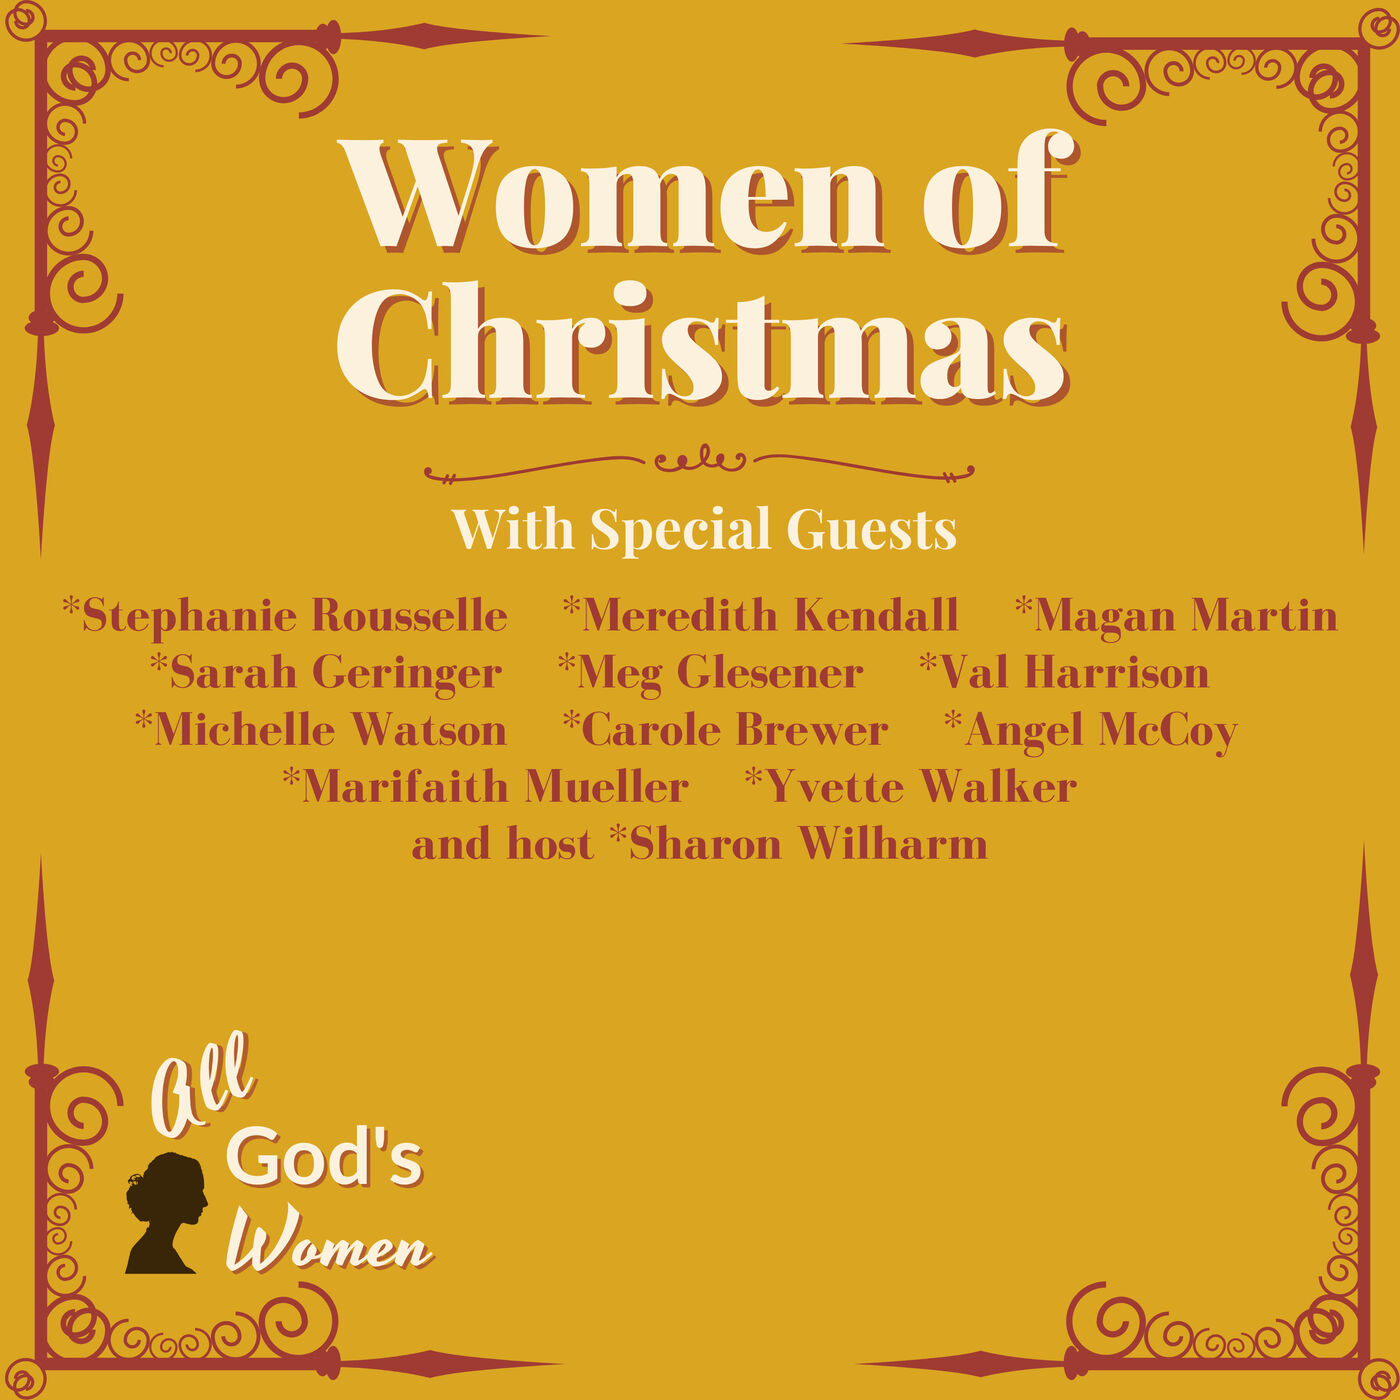 Women of Christmas Crosscast Episode Trailer